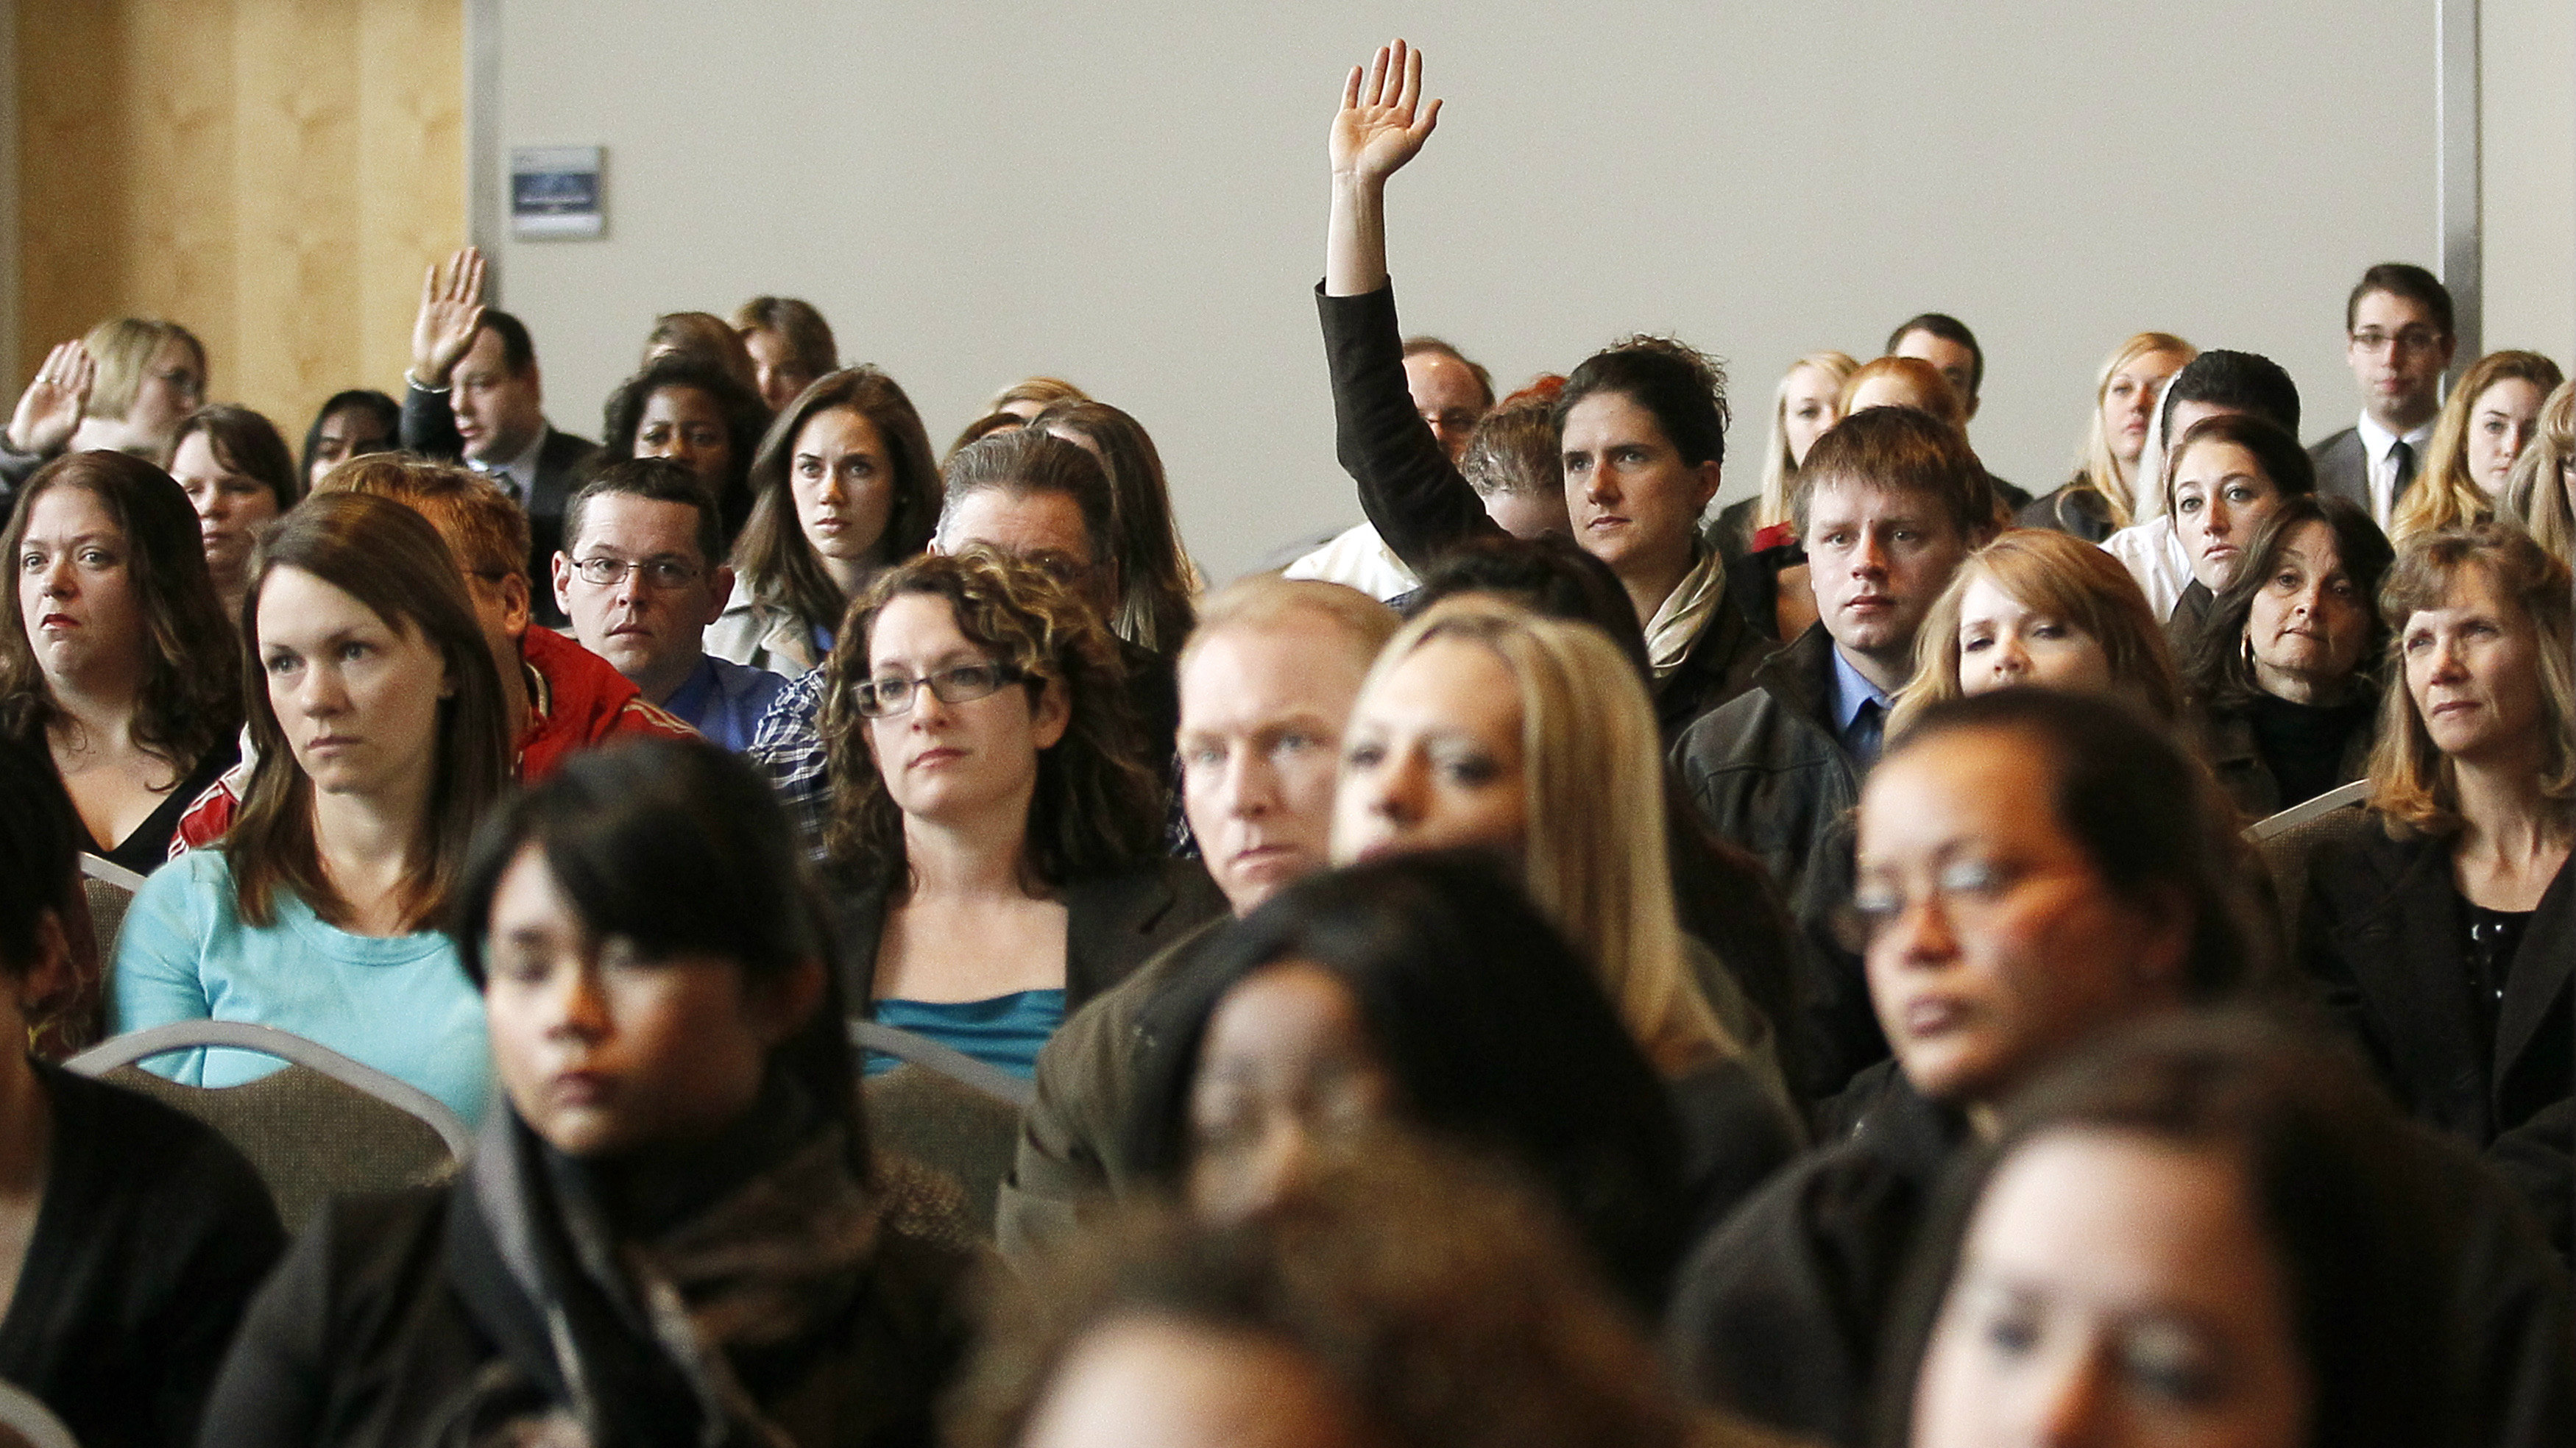 A job seeker raises his hand to ask a question at the Colorado Hospital Association health care career fair in Denver April 9, 2013. Over 700 registered for the event with over 30 health care providers represented. REUTERS/Rick Wilking (UNITED STATES - Tags: BUSINESS EMPLOYMENT HEALTH)